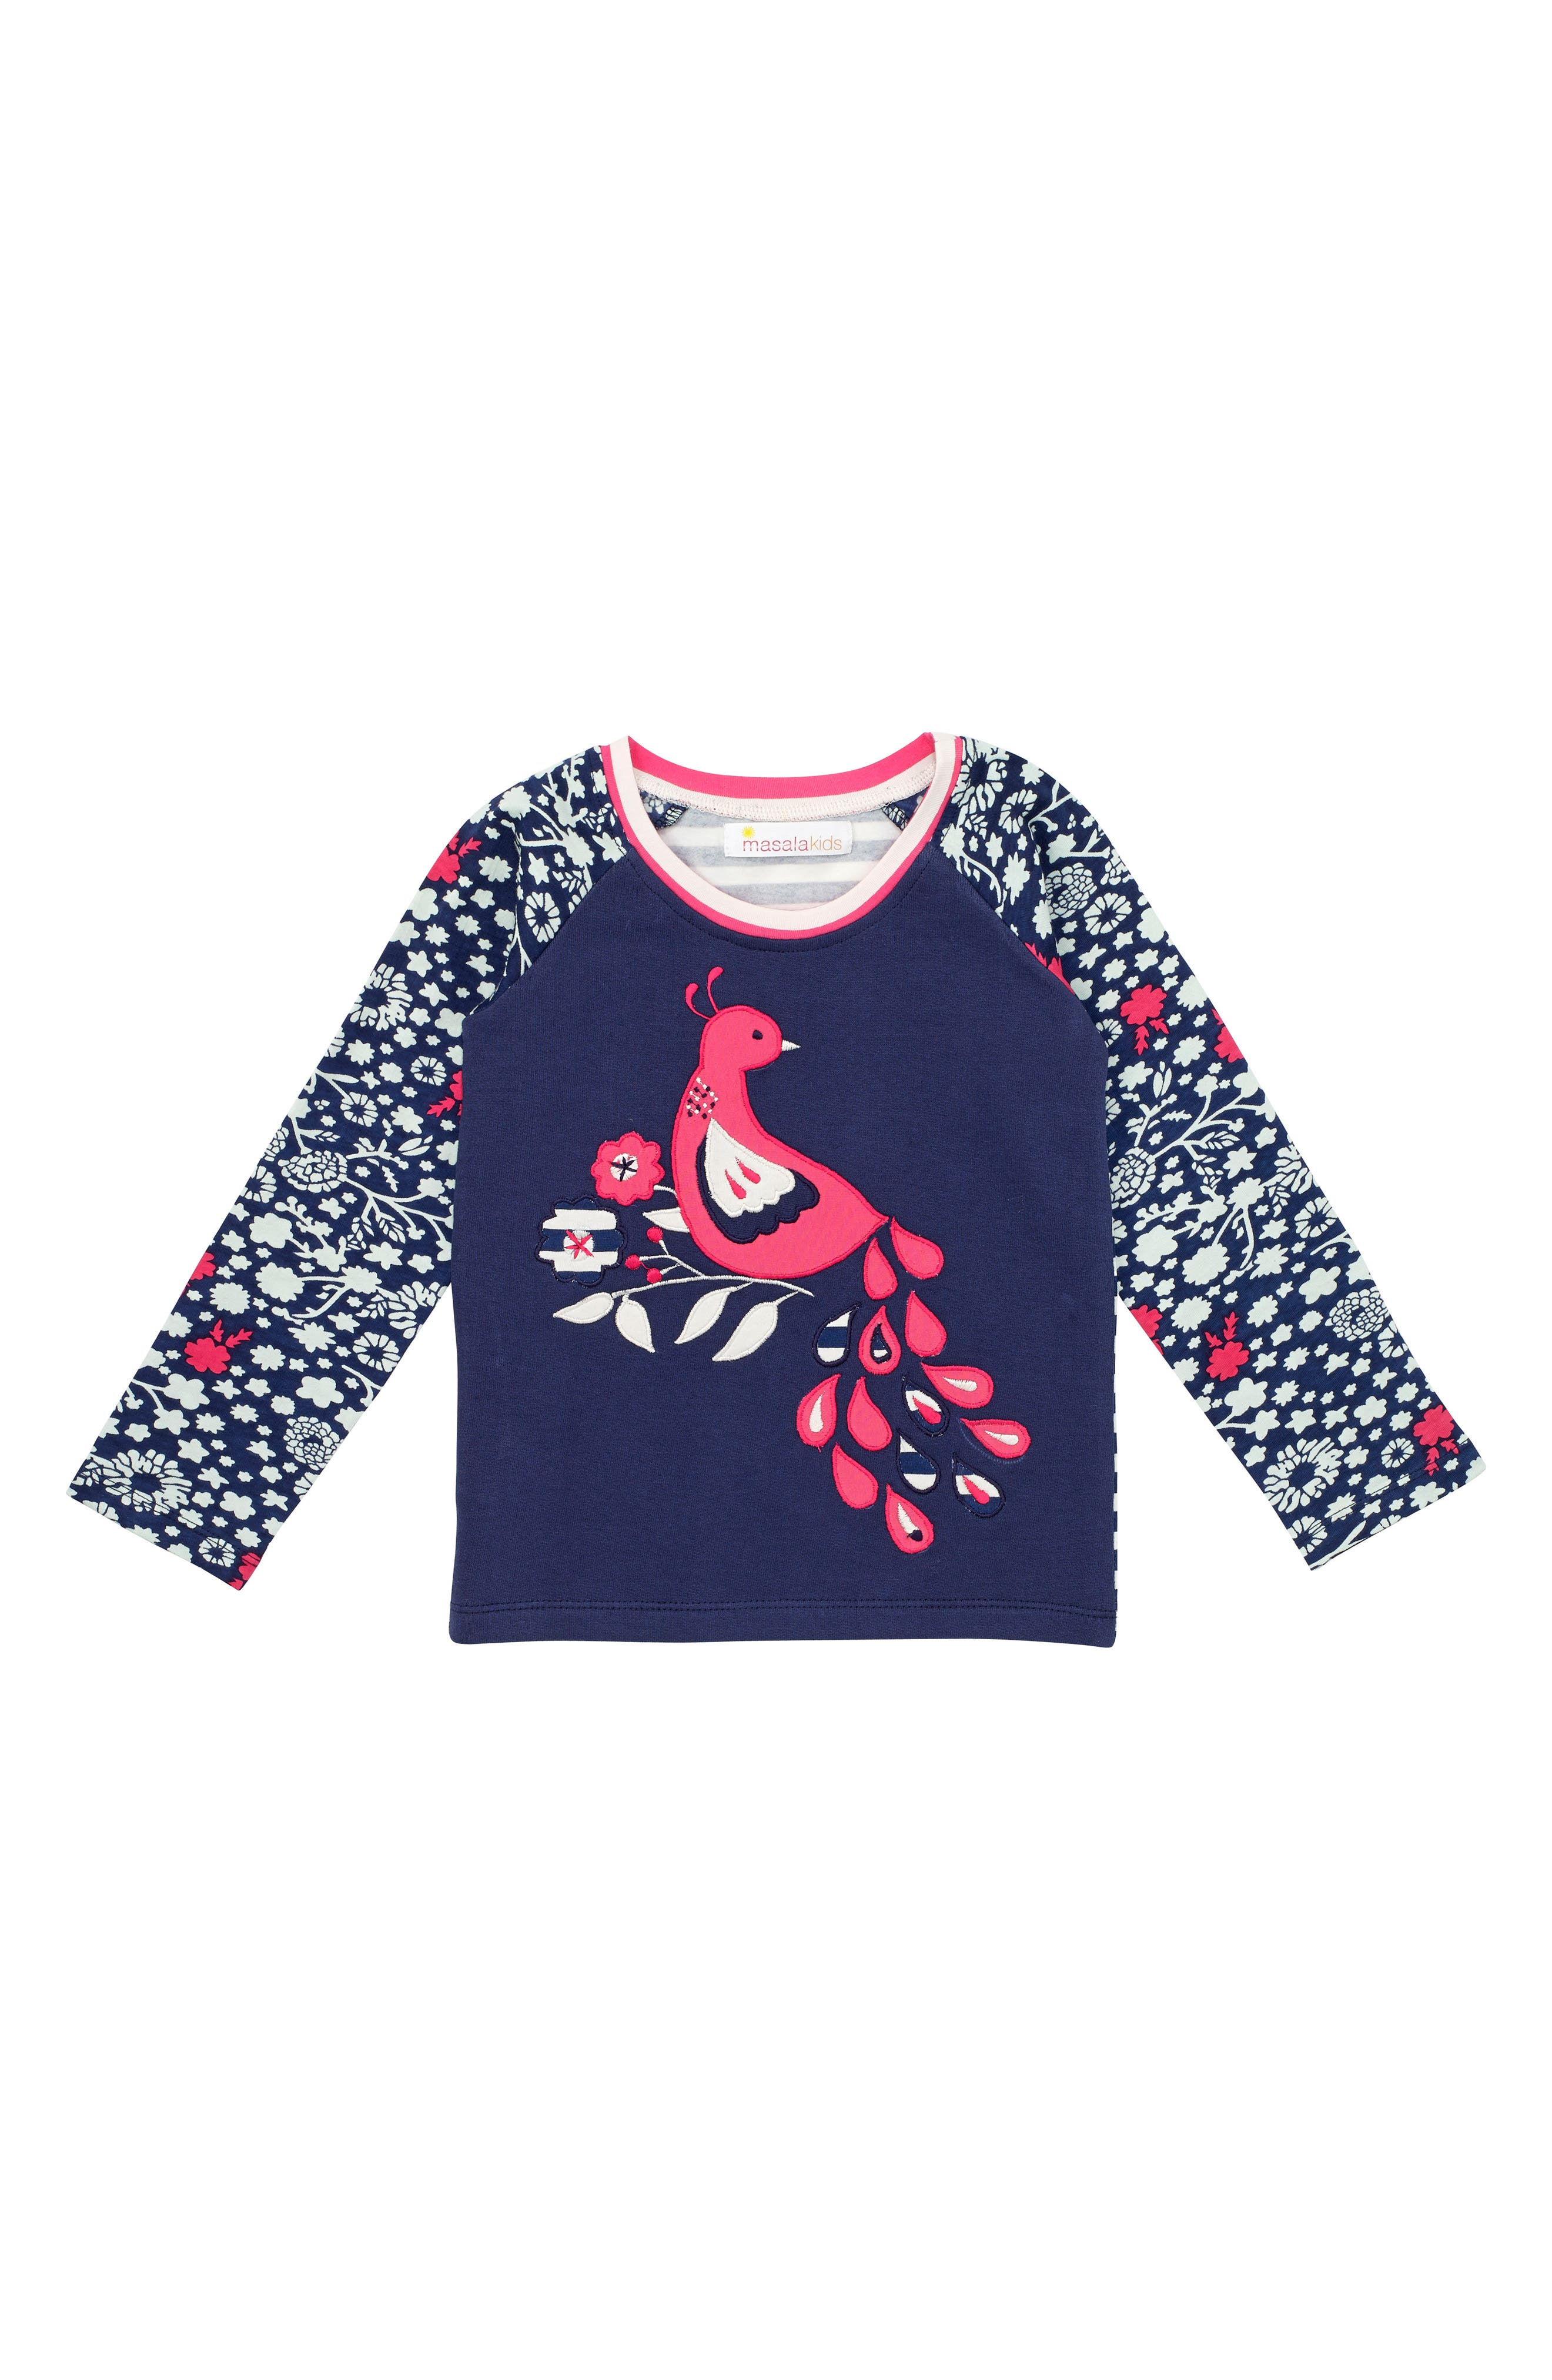 Masalababy Dancing Peacock Appliqué Top (Toddler Girls, Little Girls & Big Girls)